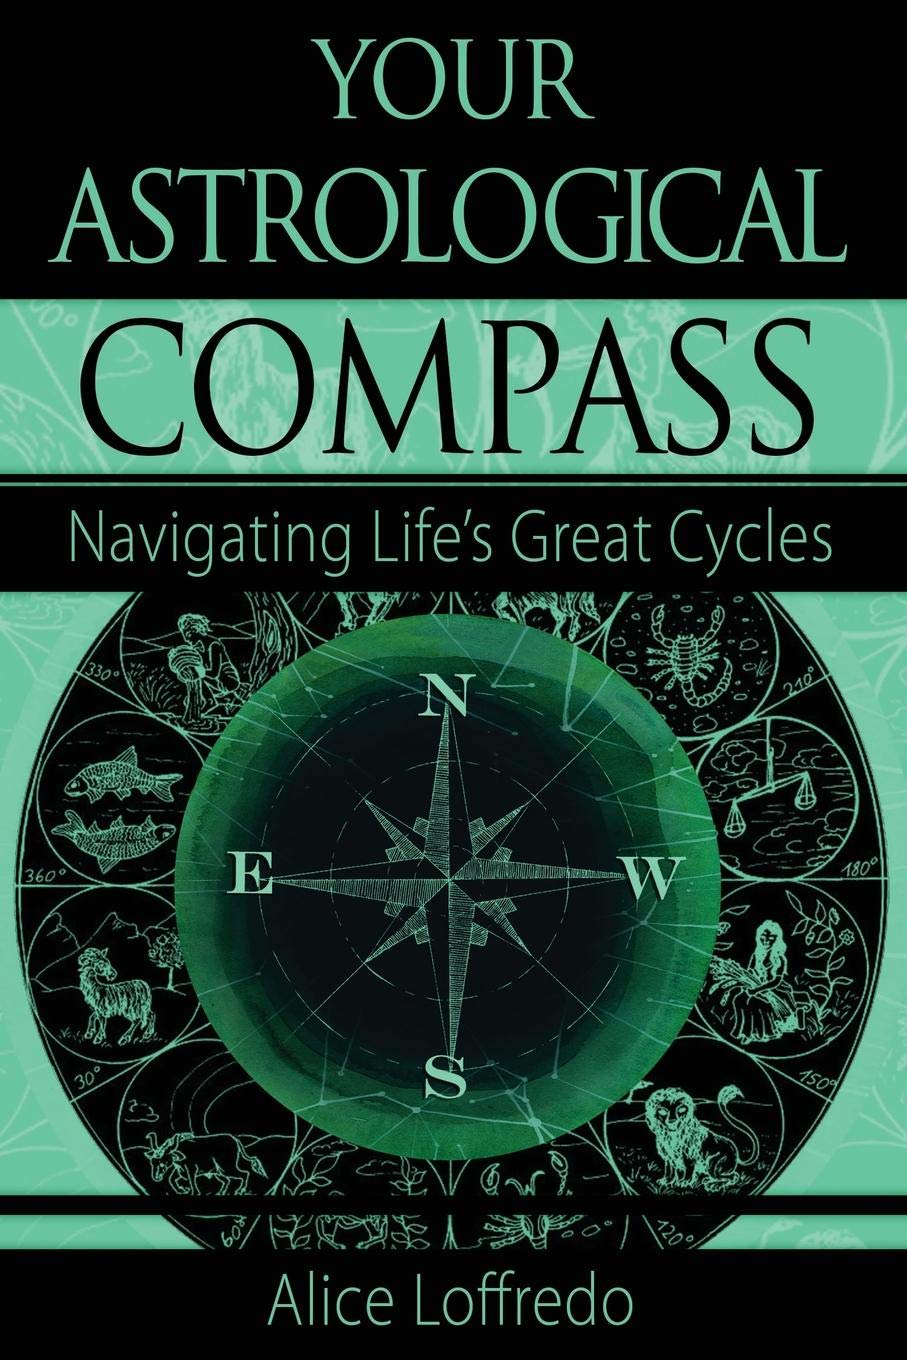 Your Astrological Compass: Navigating Life's Great Cycles